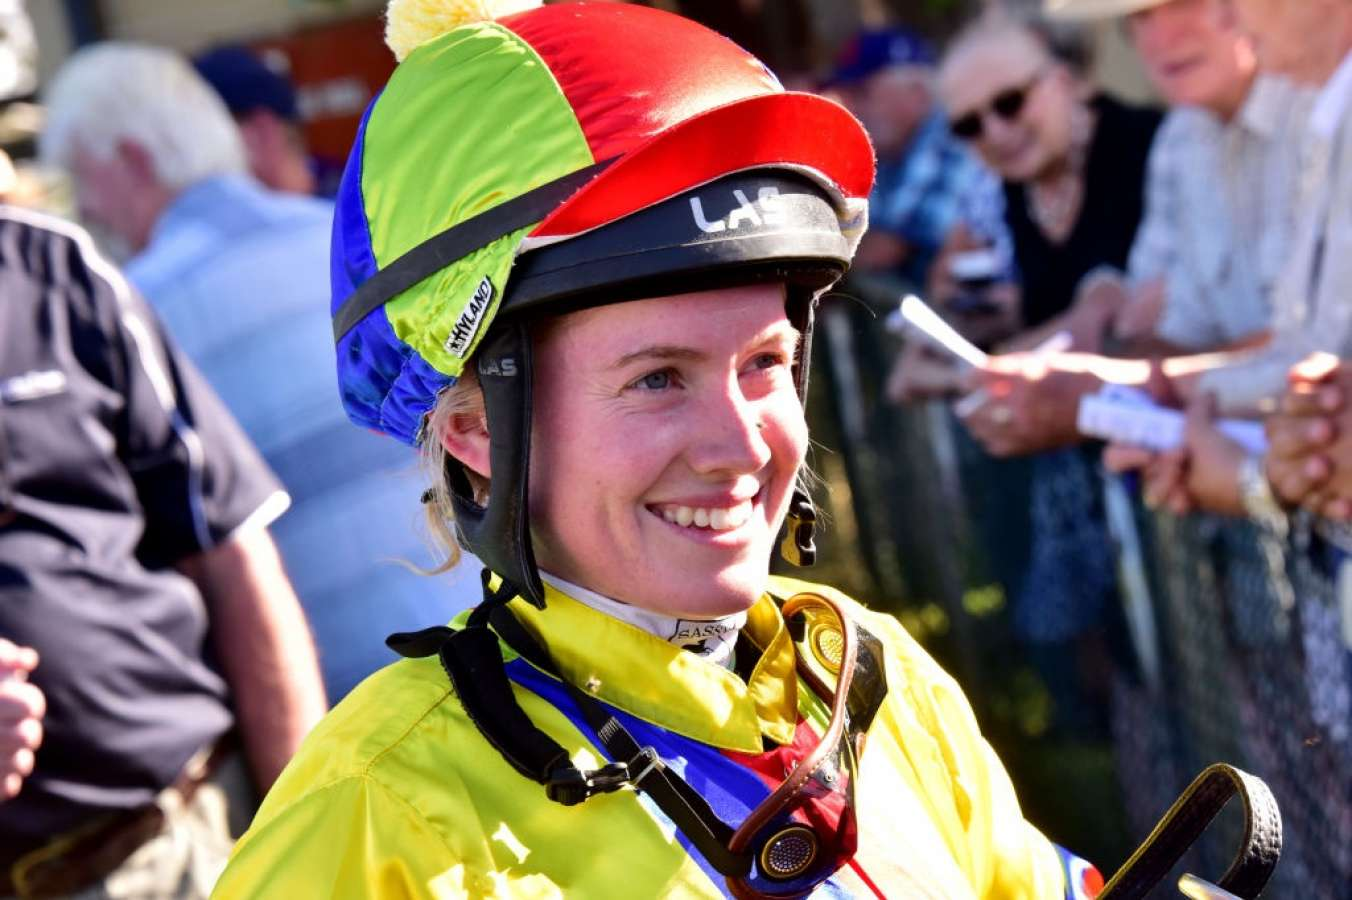 Jockey Dead After Fall At Melbourne Racecourse